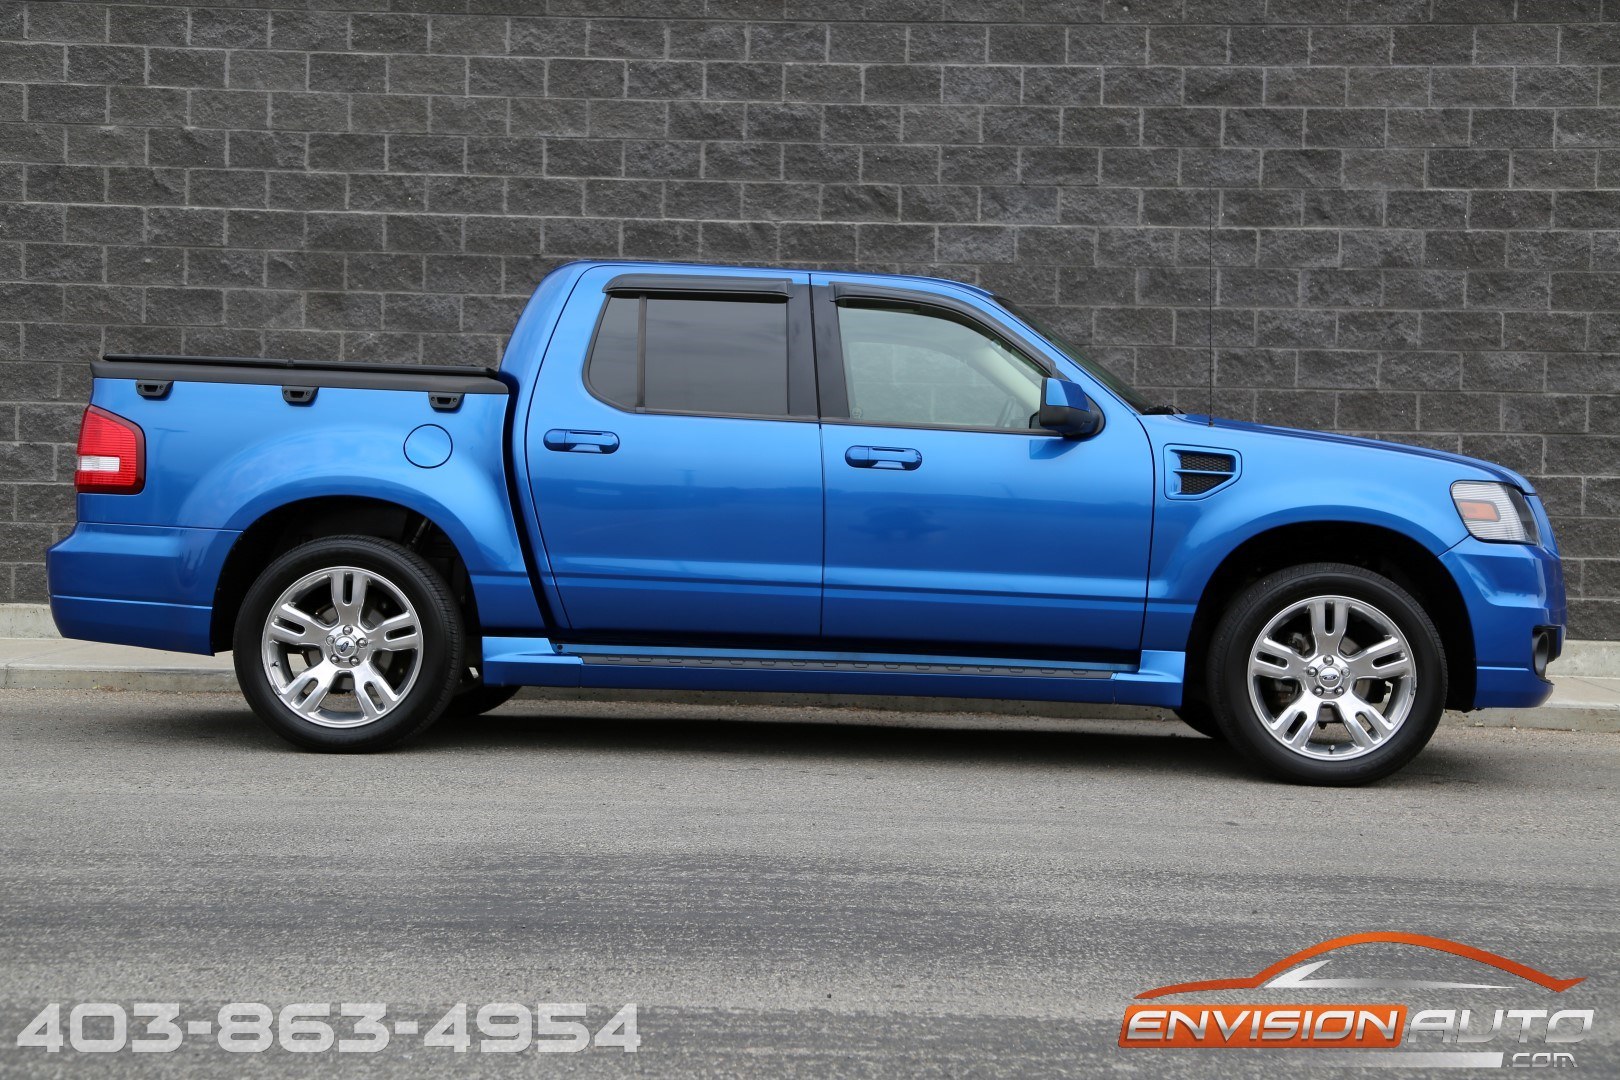 2010 Ford Sport Trac Adrenalin Awd One Owner Envision